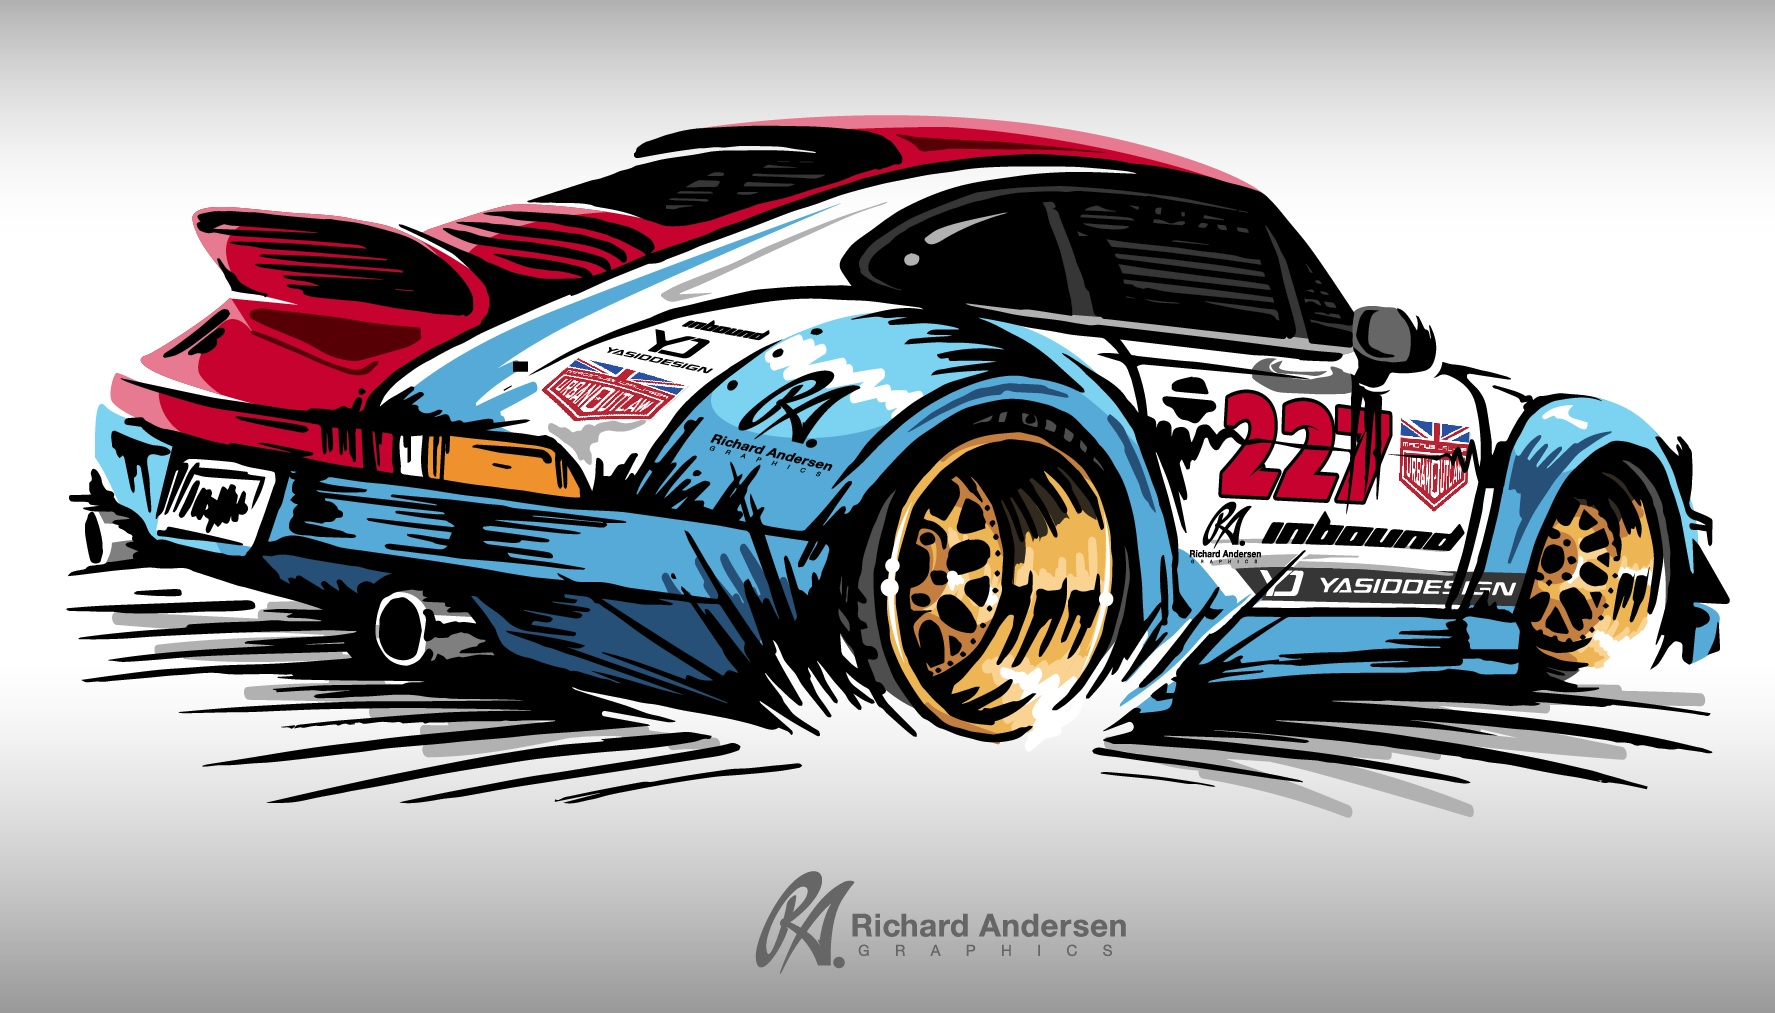 Magnus Walker Inspired Porsche This Was Awesome To Push This New